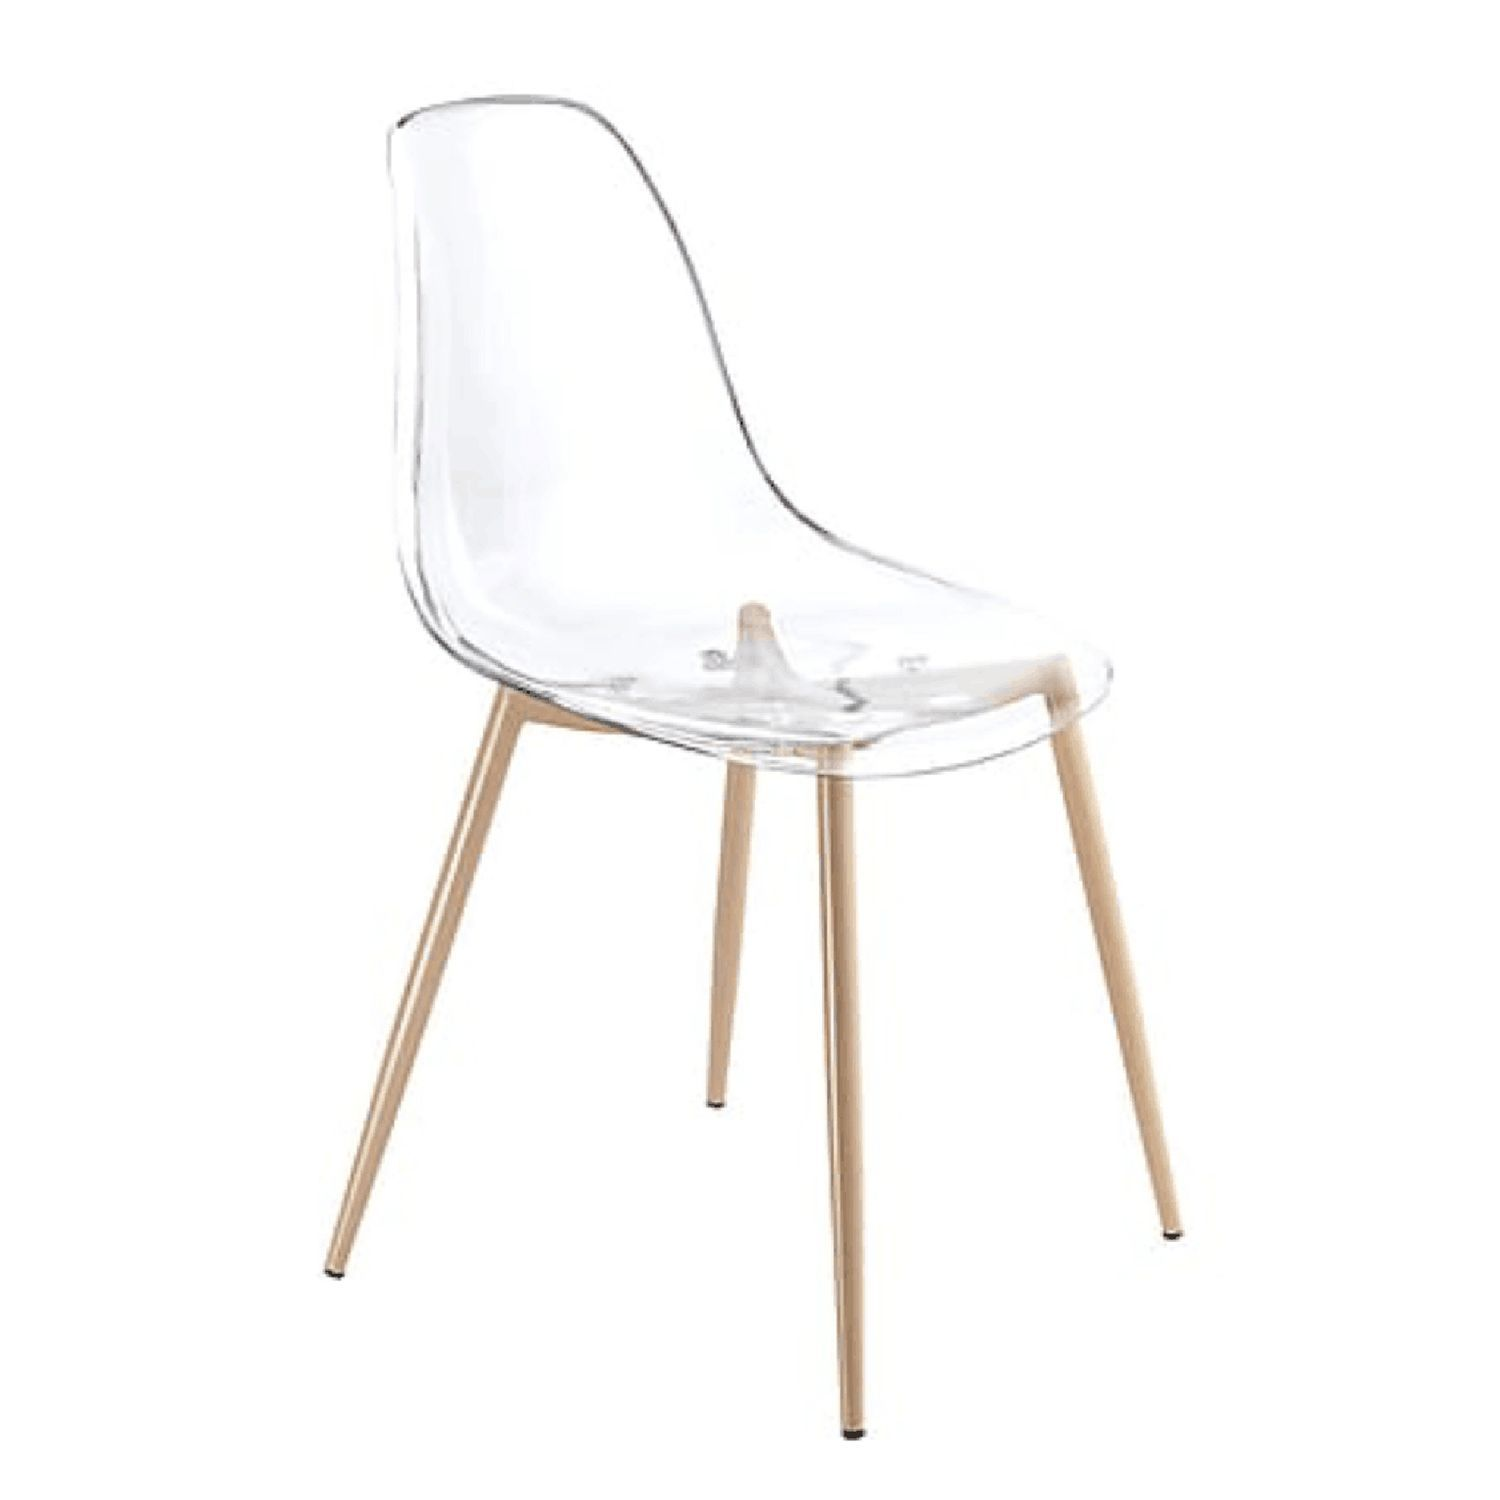 Https://www.menzzo.fr/scandinave/fauteuils-scandinaves.html Chaise Wooden Cross Edition Chaises In 2018 Fauteuil Bureau